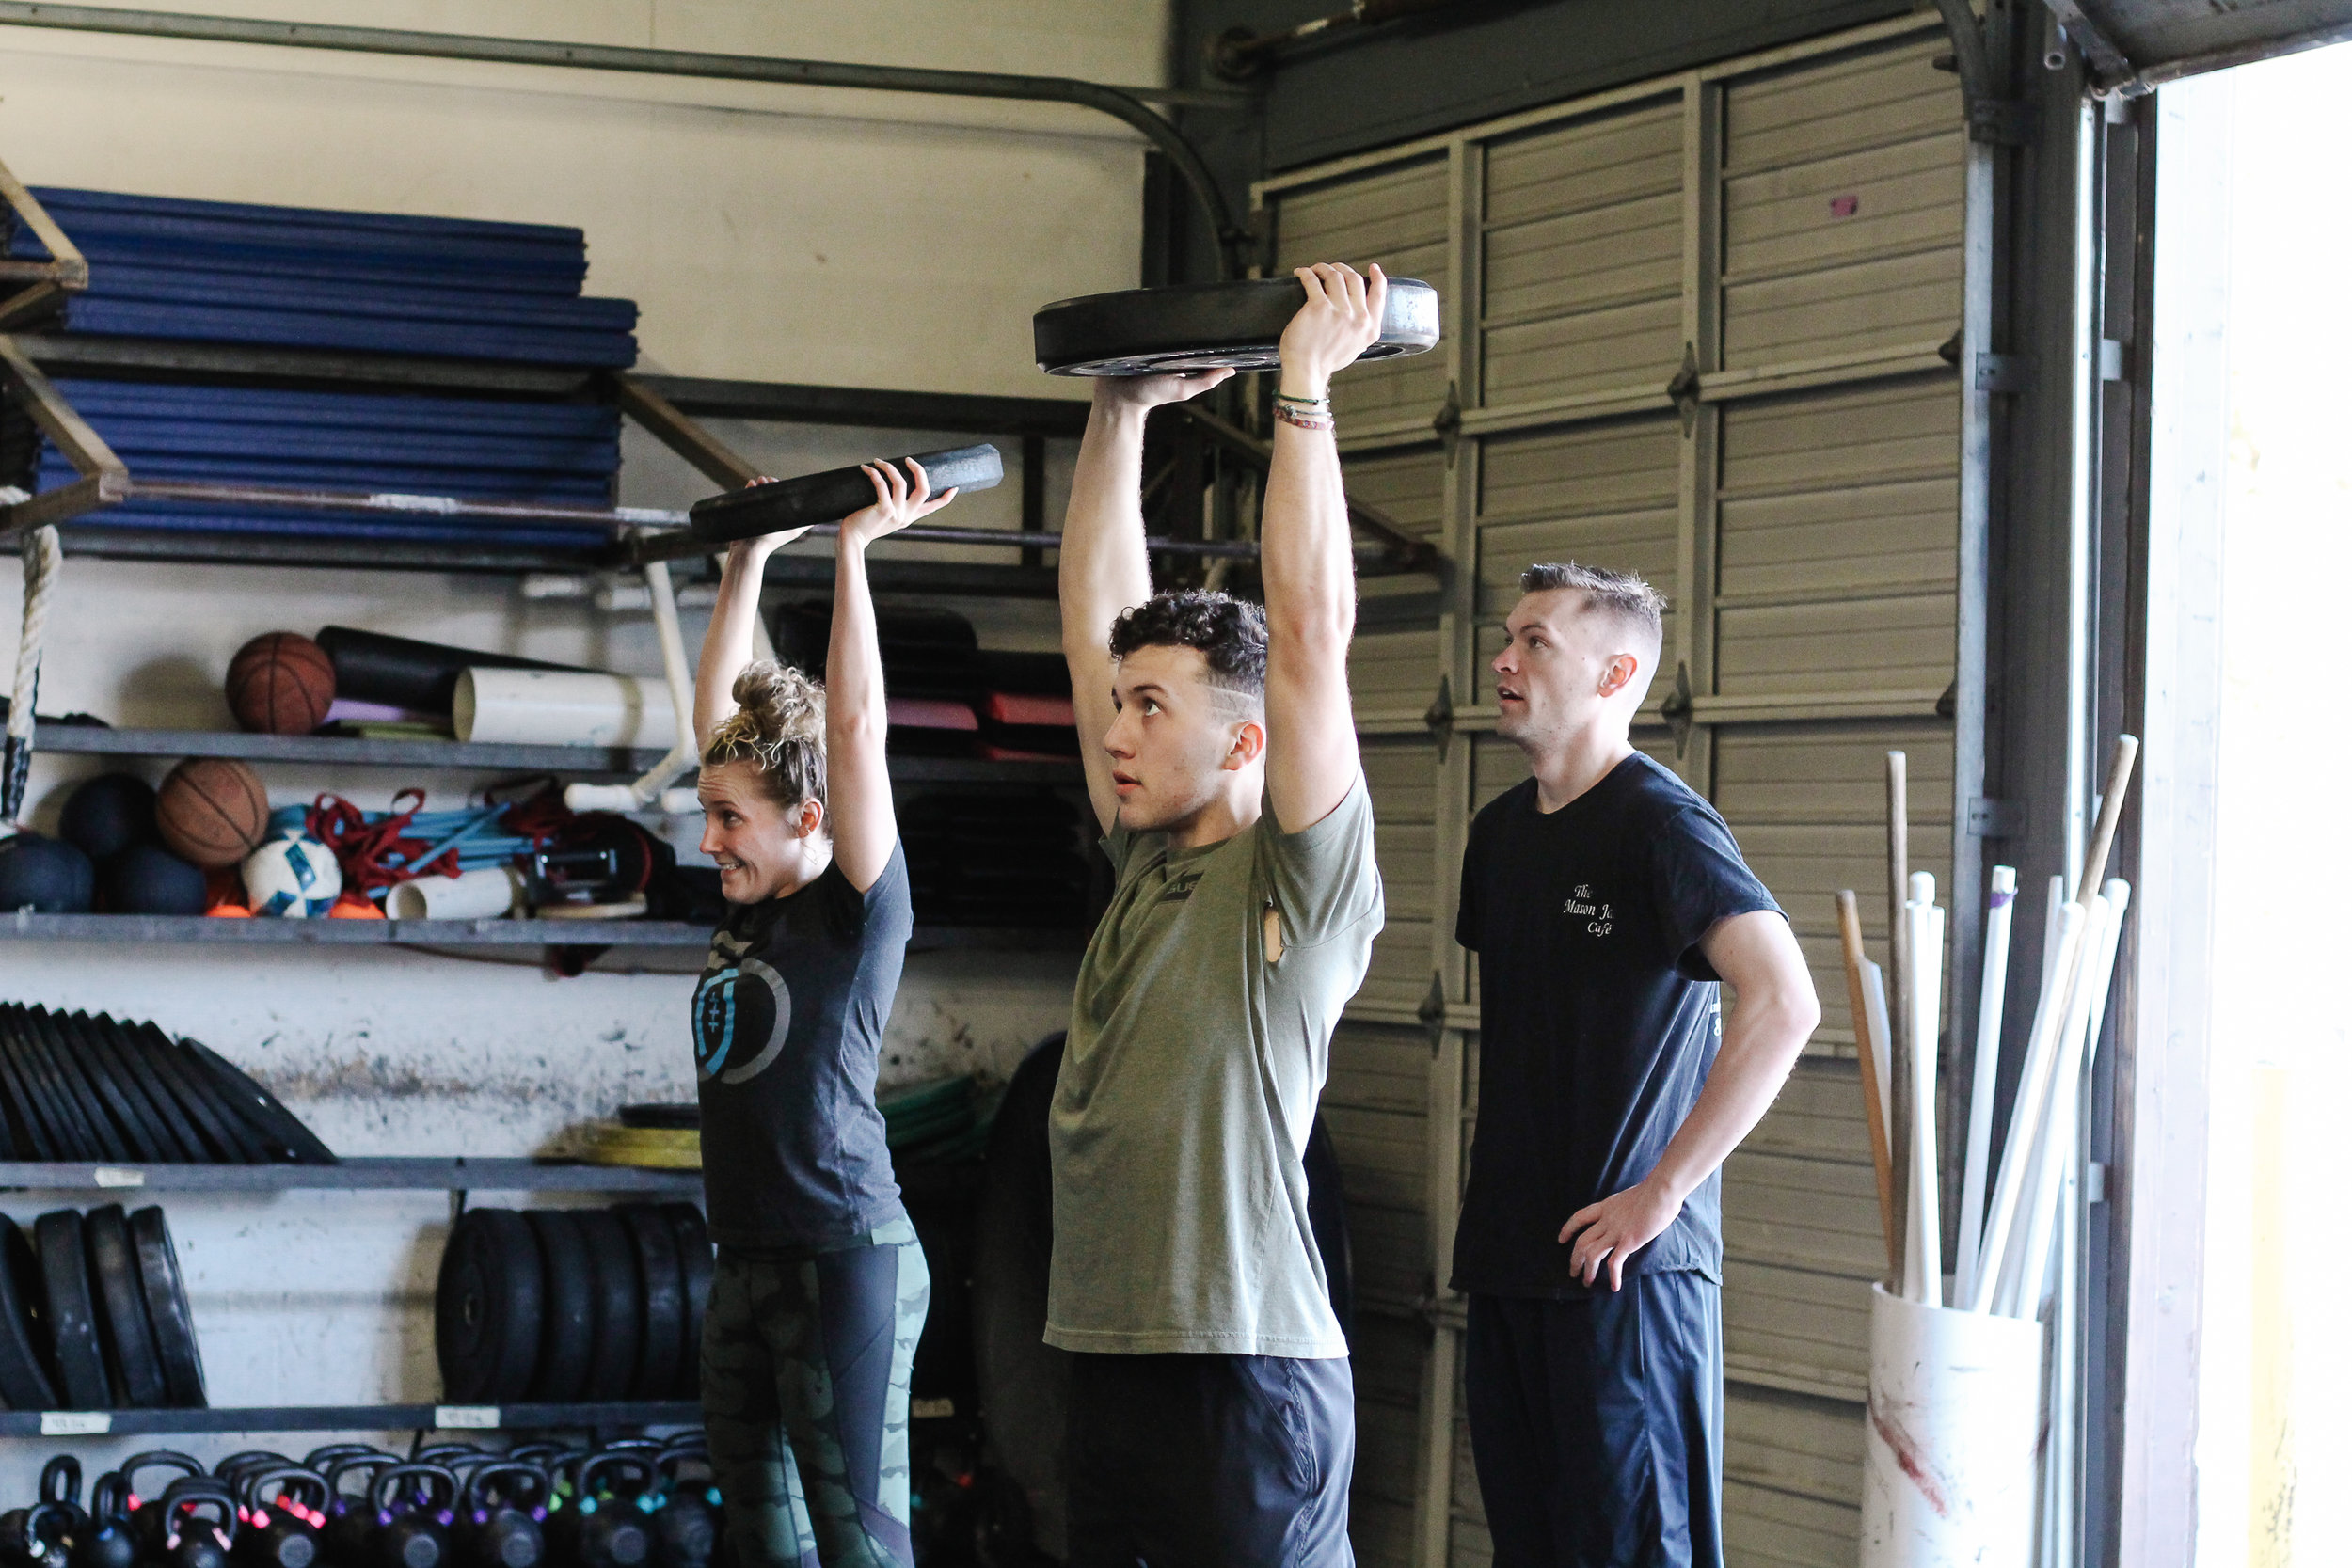 Your first WOD is free! - Come on in and experience the CrossFit Postal community TODAY!